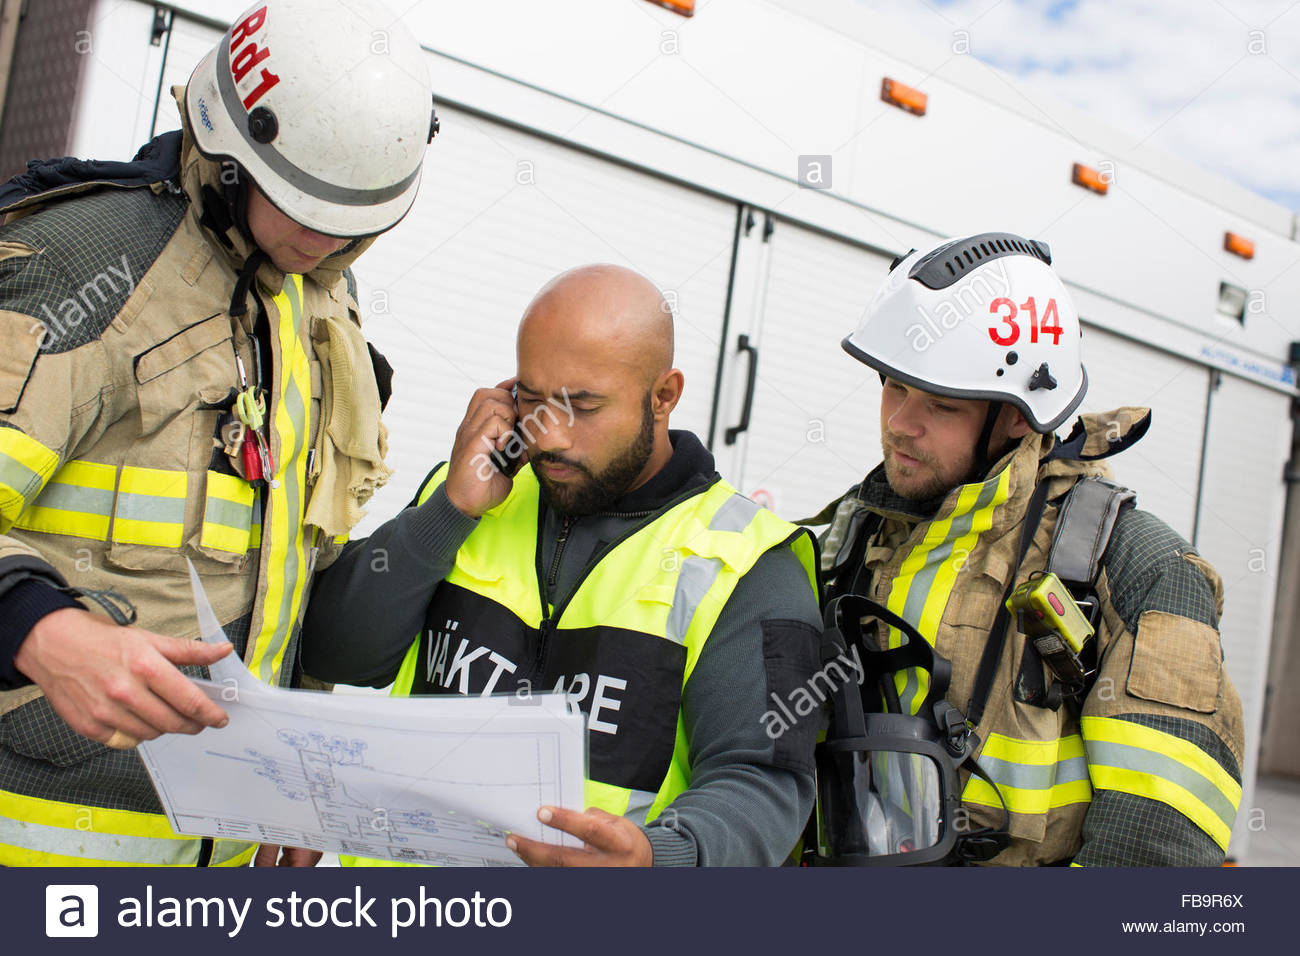 Sweden, Sodermanland, Security guard and firefighters looking at plan - Stock Image